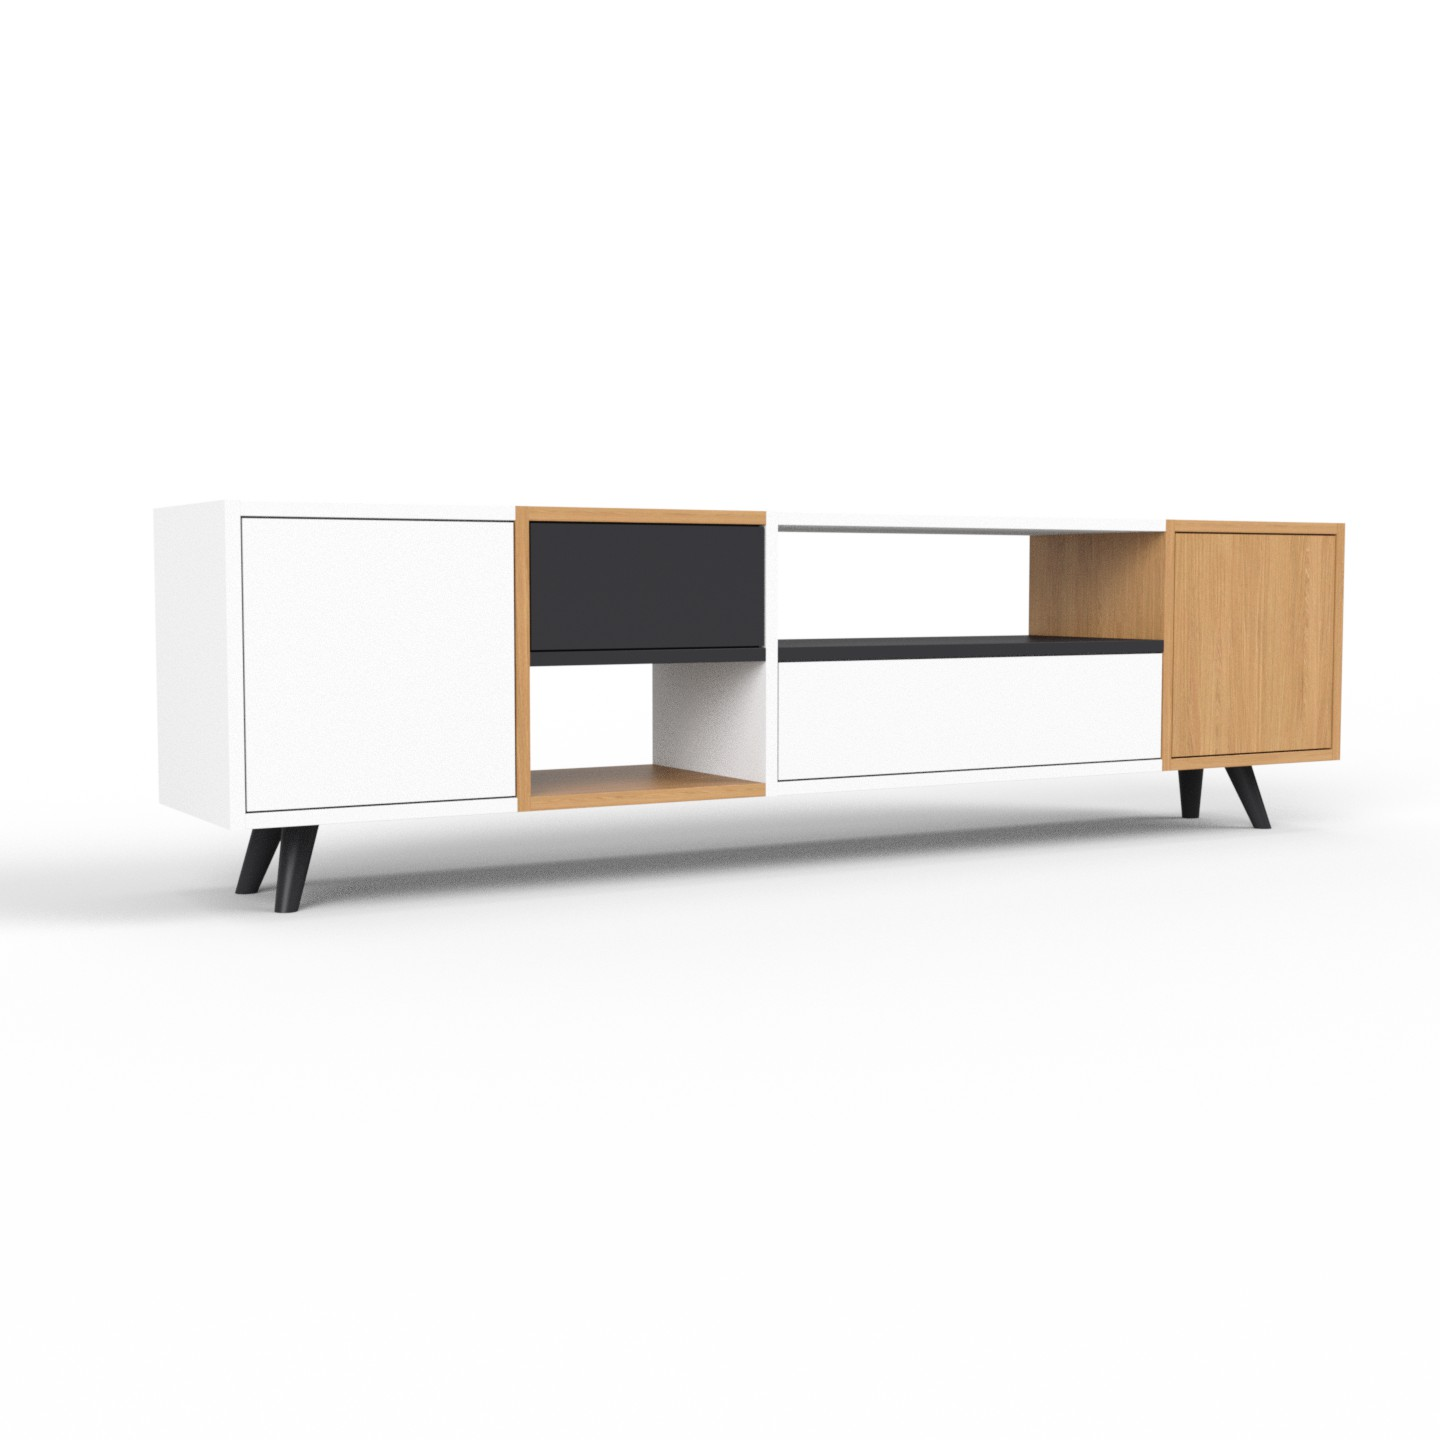 Couchtisch Scandi Design Couchtisch Scandi Design | Cassina 520 Accordo - Table ...